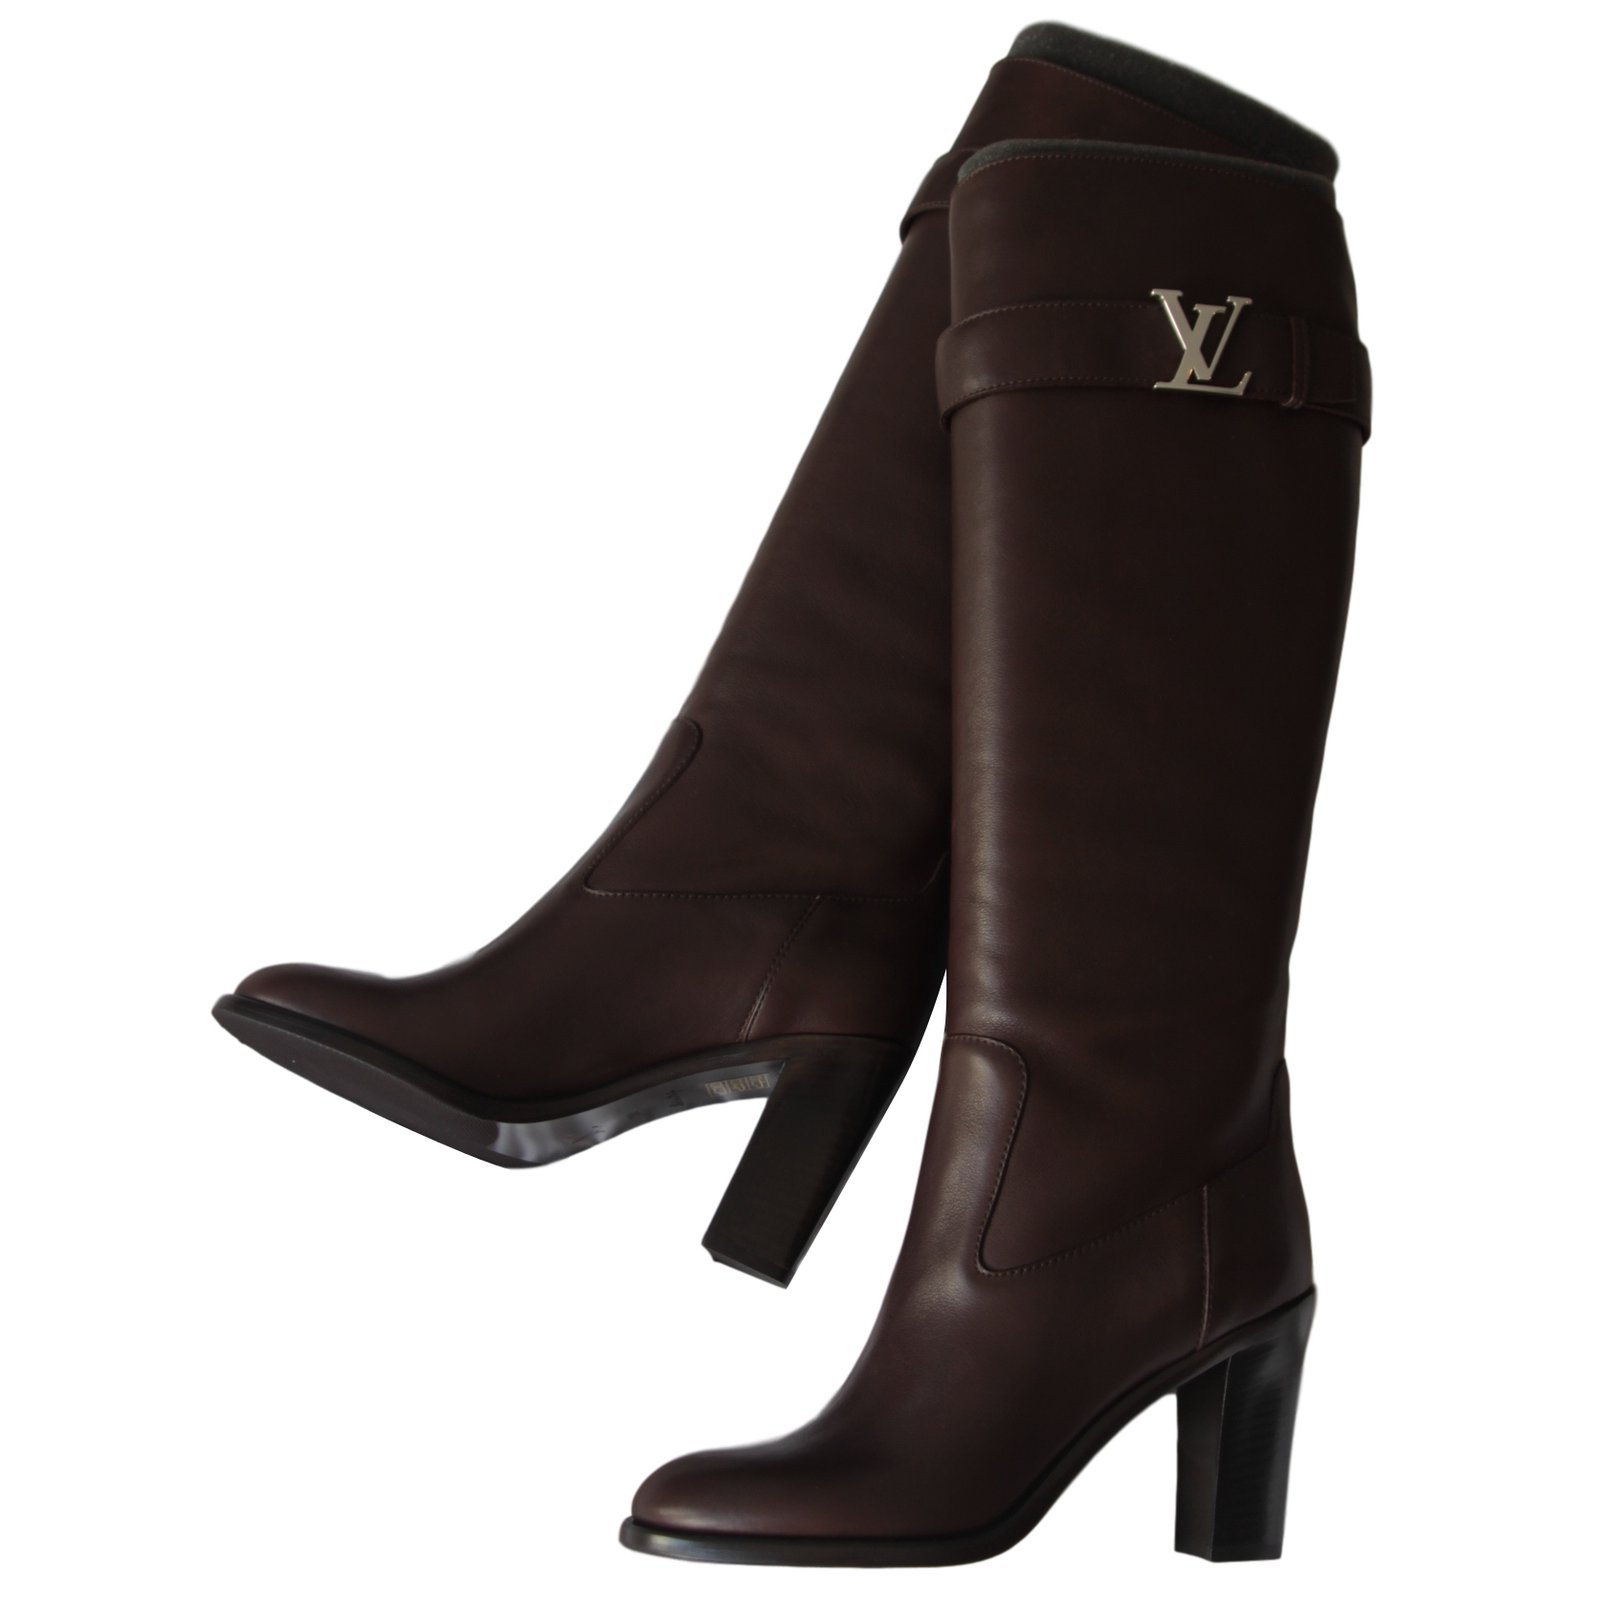 Bottes Louis Vuitton LEGACY HIGH Cuir Marron ref.14425 - Joli Closet 551f62d05db